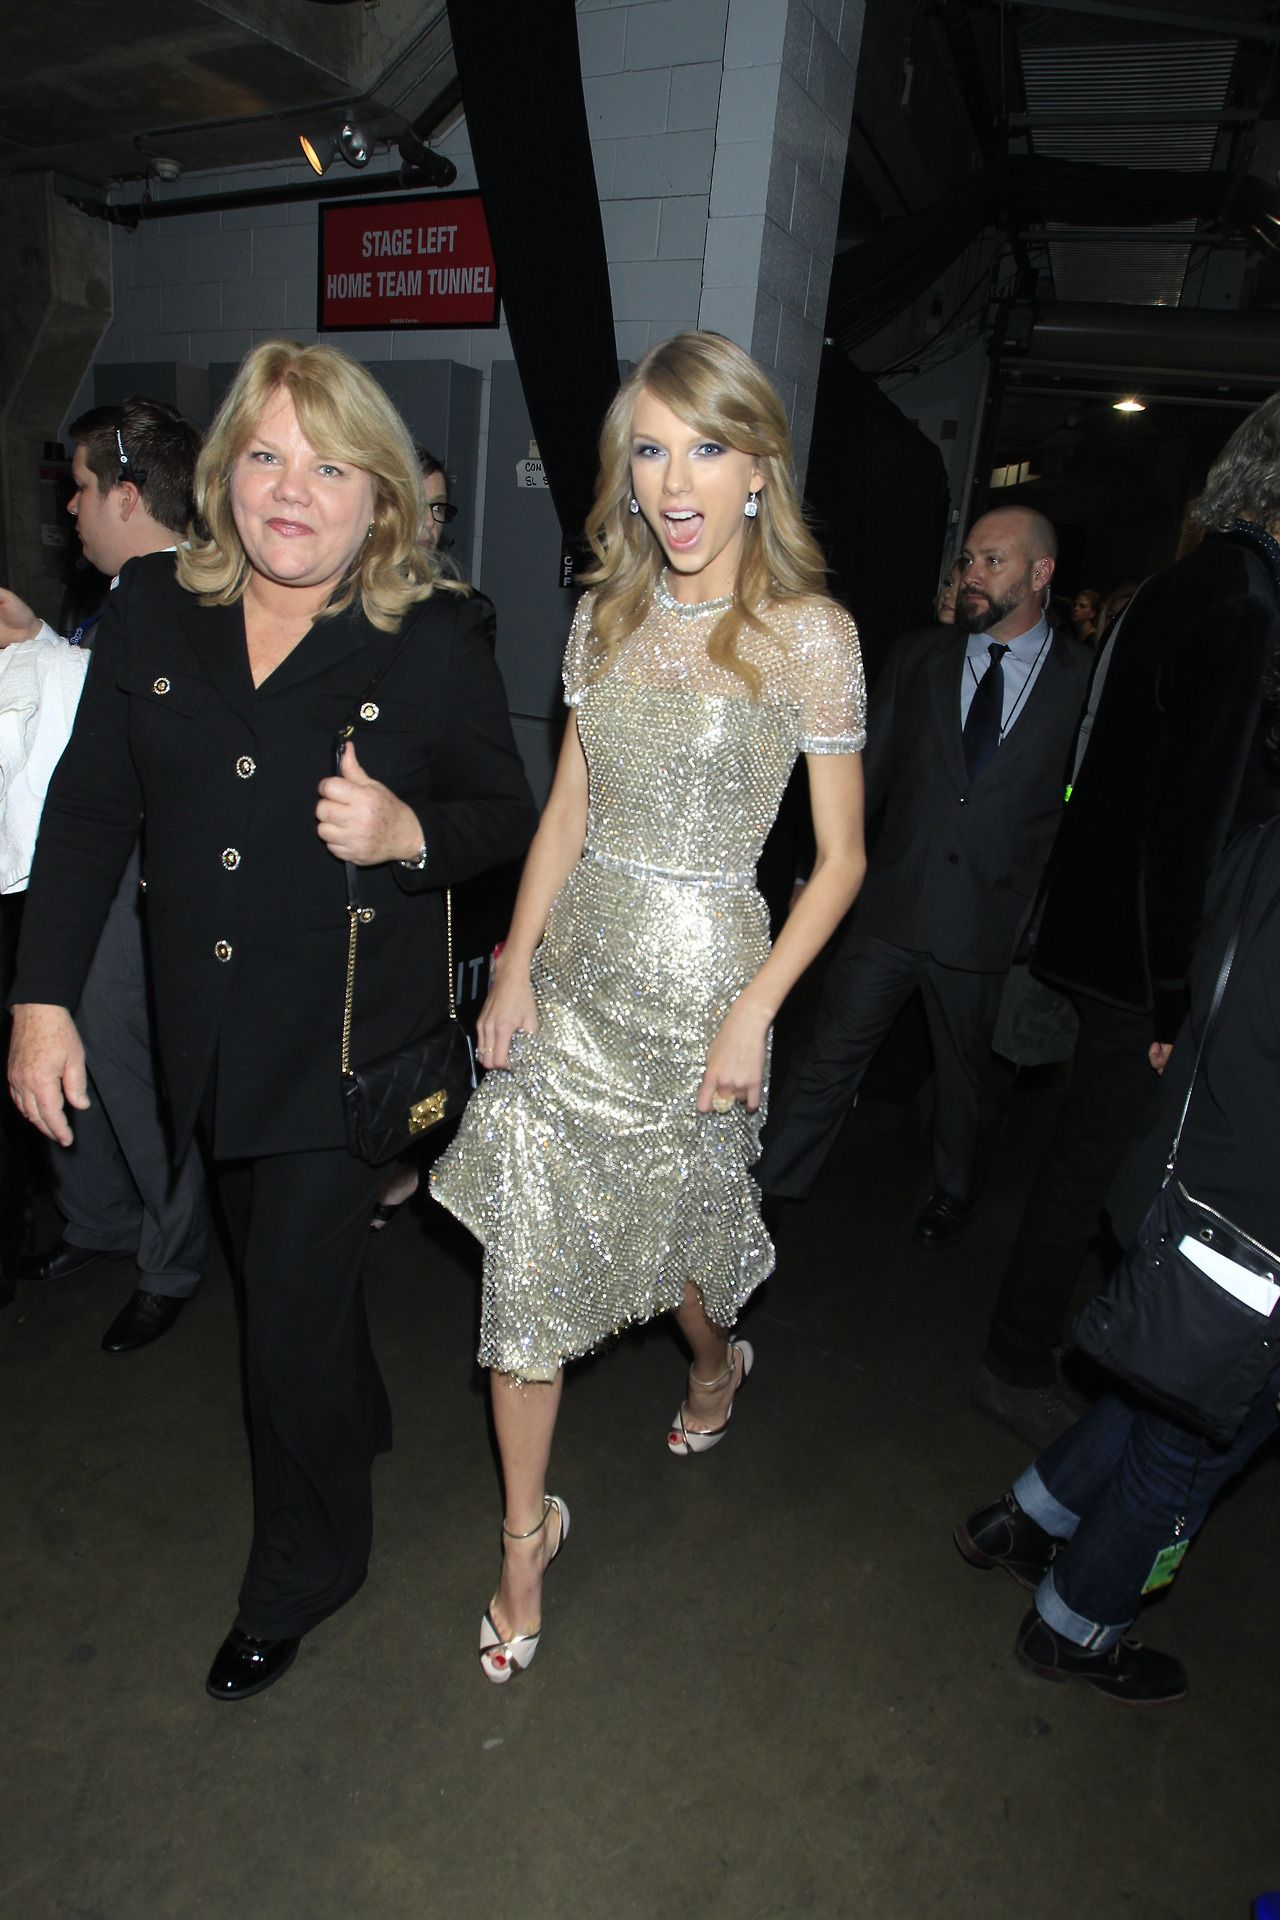 Tswiftdaily I Learned A Lot From Ethel Kennedy Photo Taylor Alison Swift Taylor Swift 13 Taylor Swift